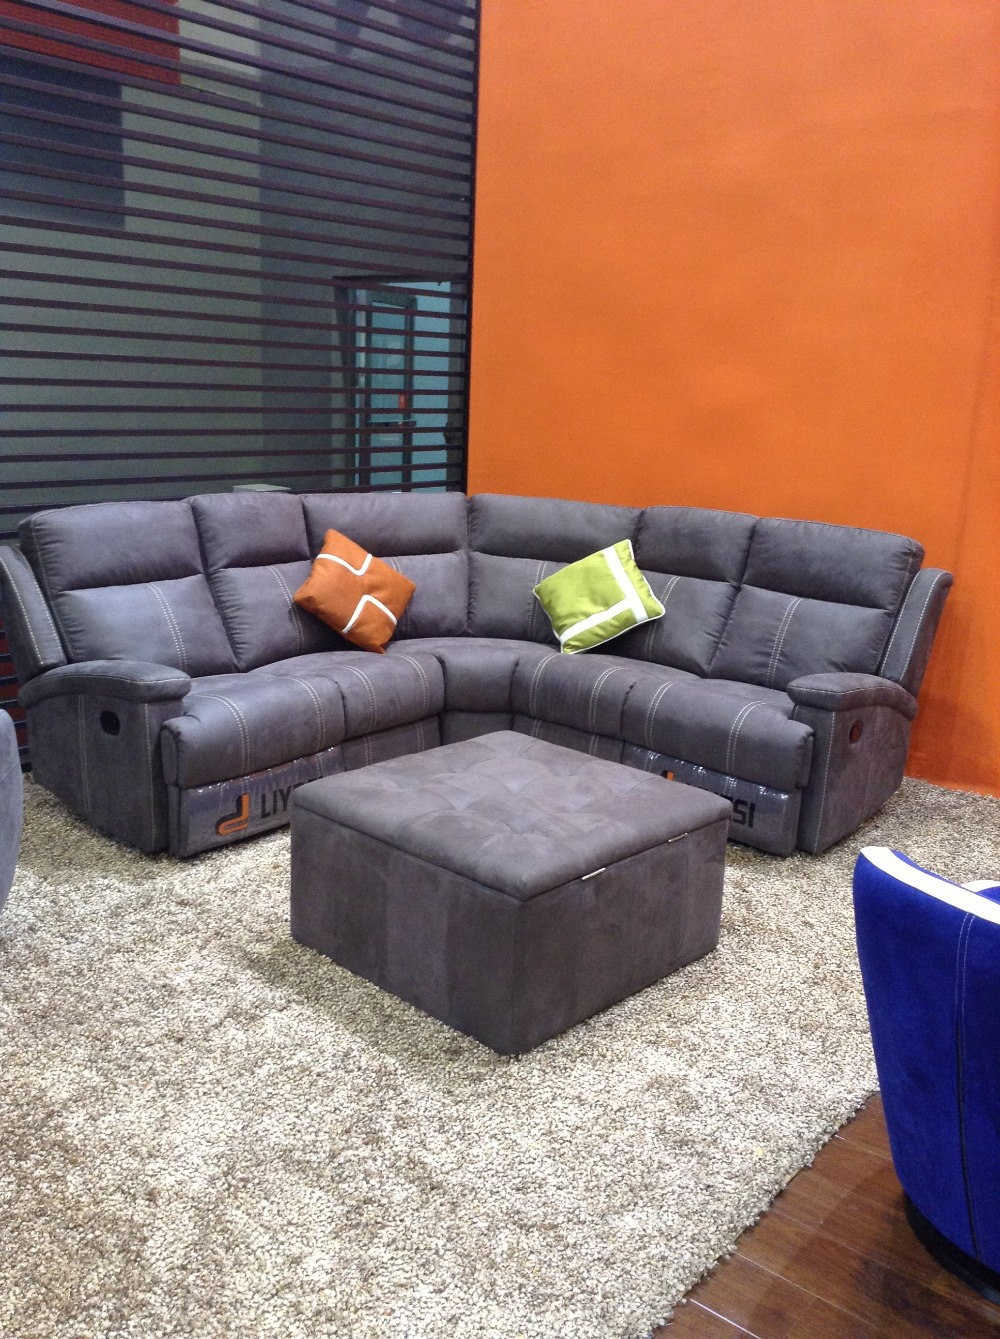 Top Selling Wholesale Living Room European Style Sectional Sofa With Manual  Recliners YB620 In Living Room Sofas From Furniture On Aliexpress.com |  Alibaba ...